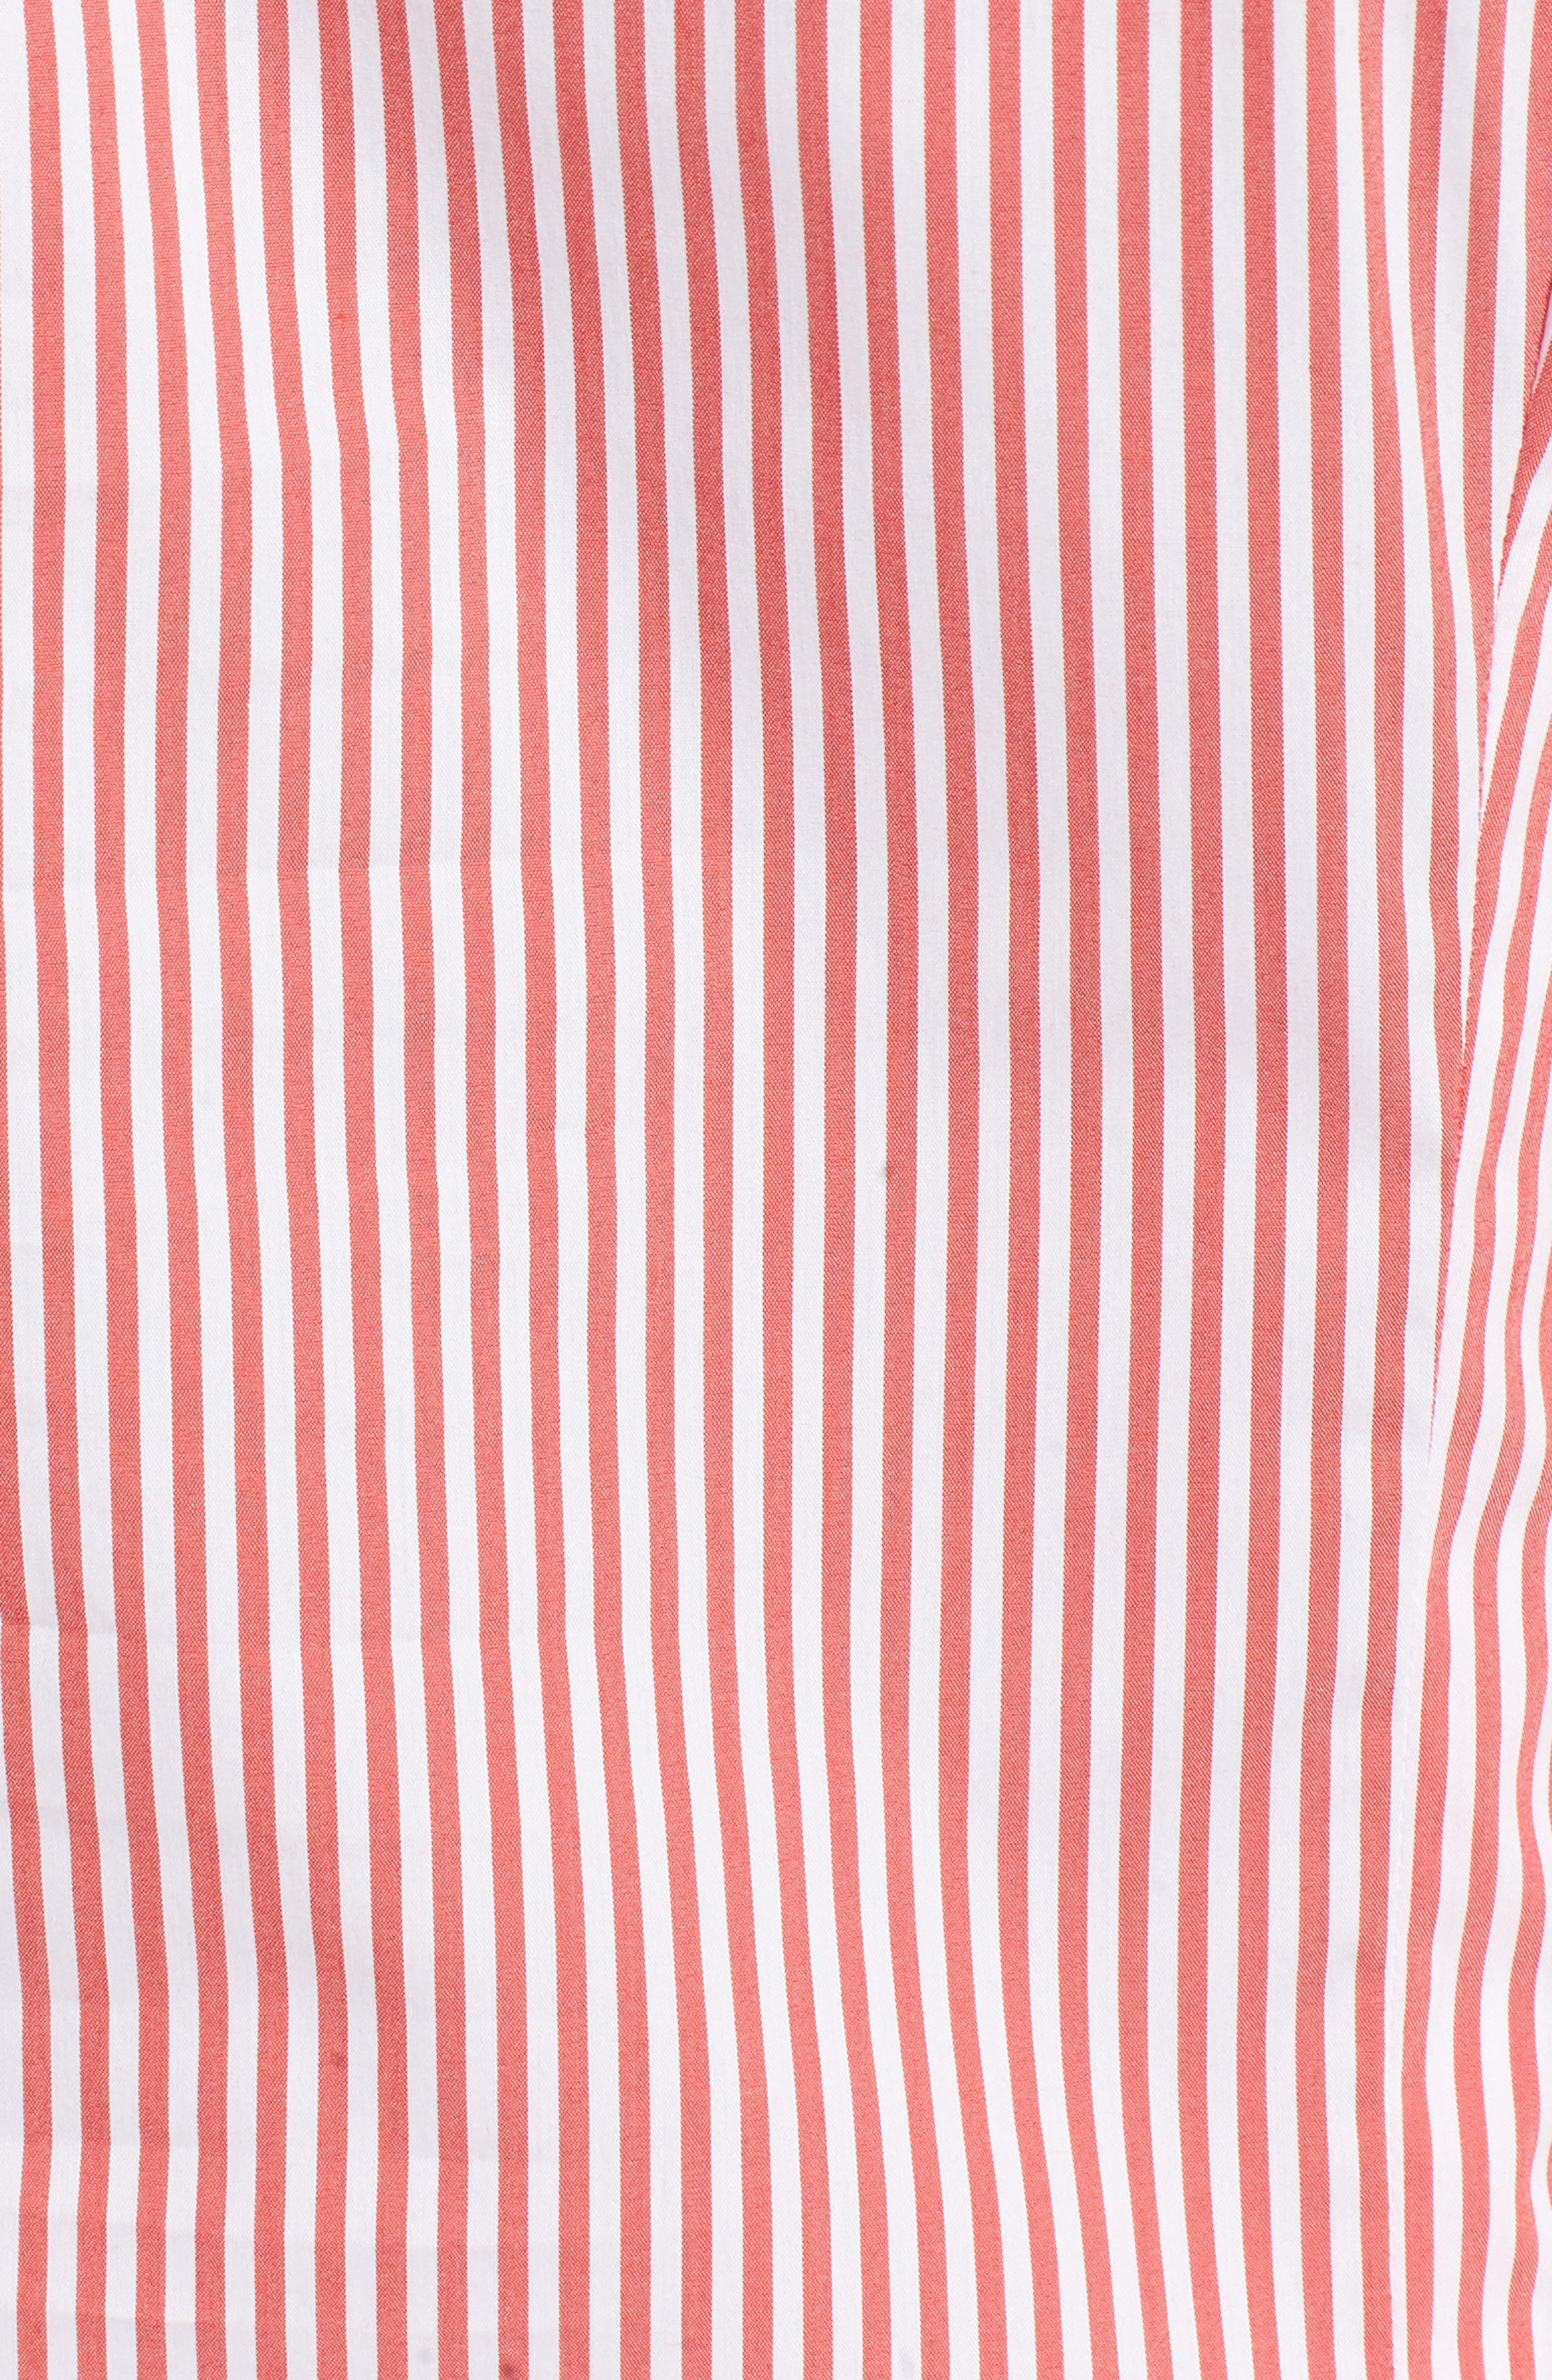 Adrianna Maternity Top,                             Alternate thumbnail 5, color,                             Red/White Stripe